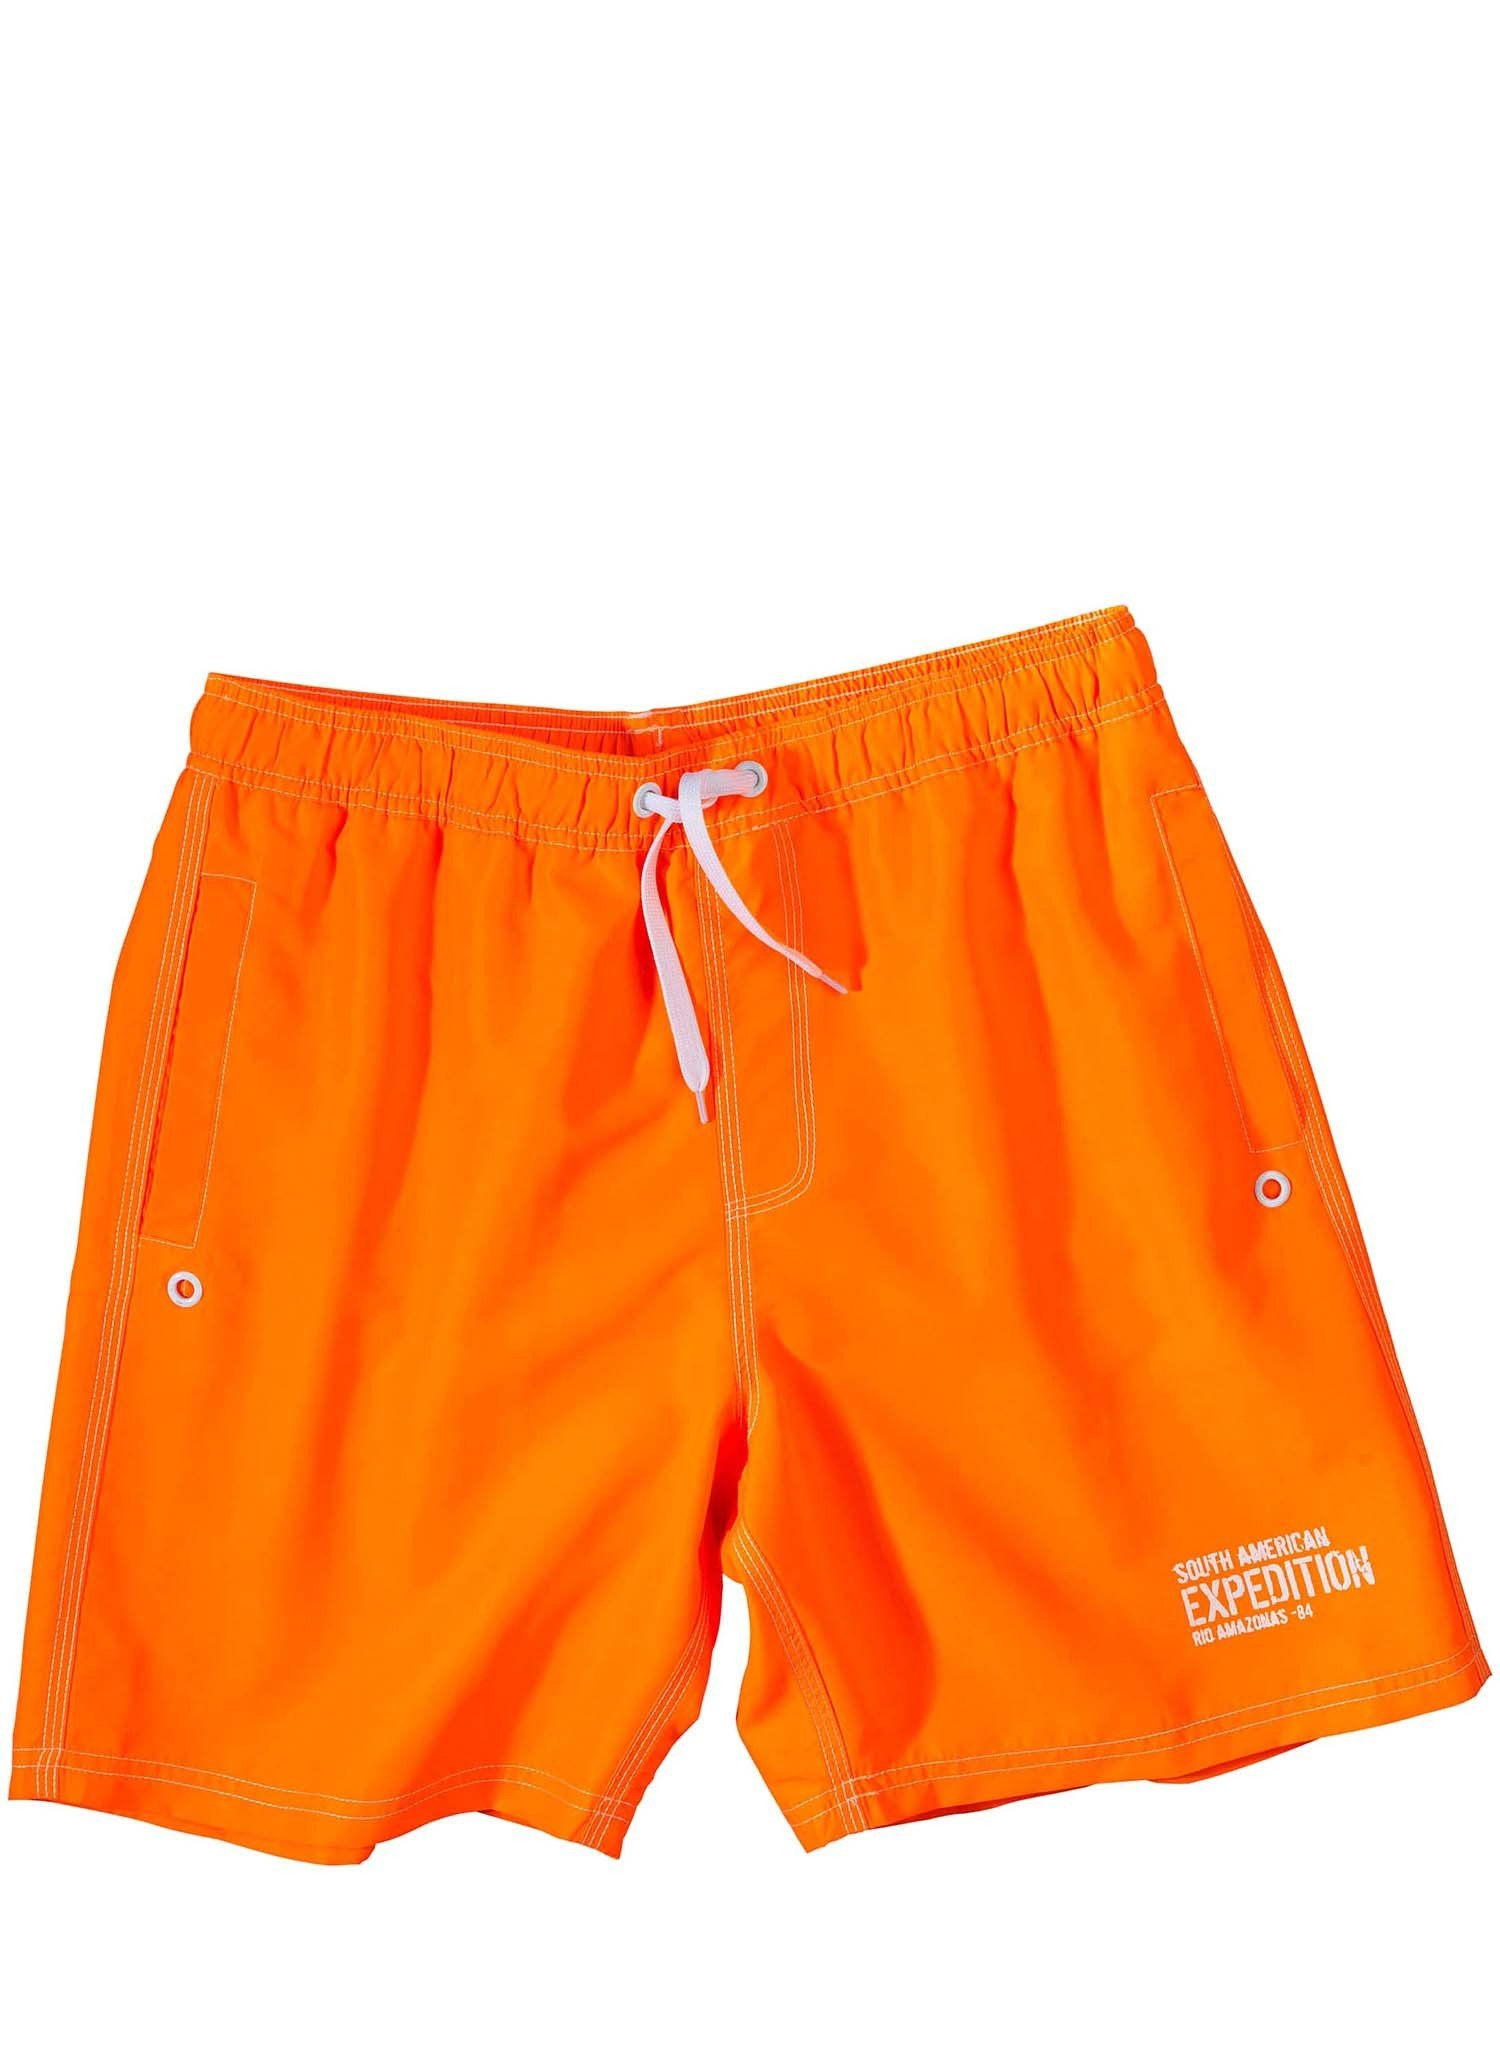 H-Bade-Shorts,NEON orange L 022 - 3 - Ronja.ch